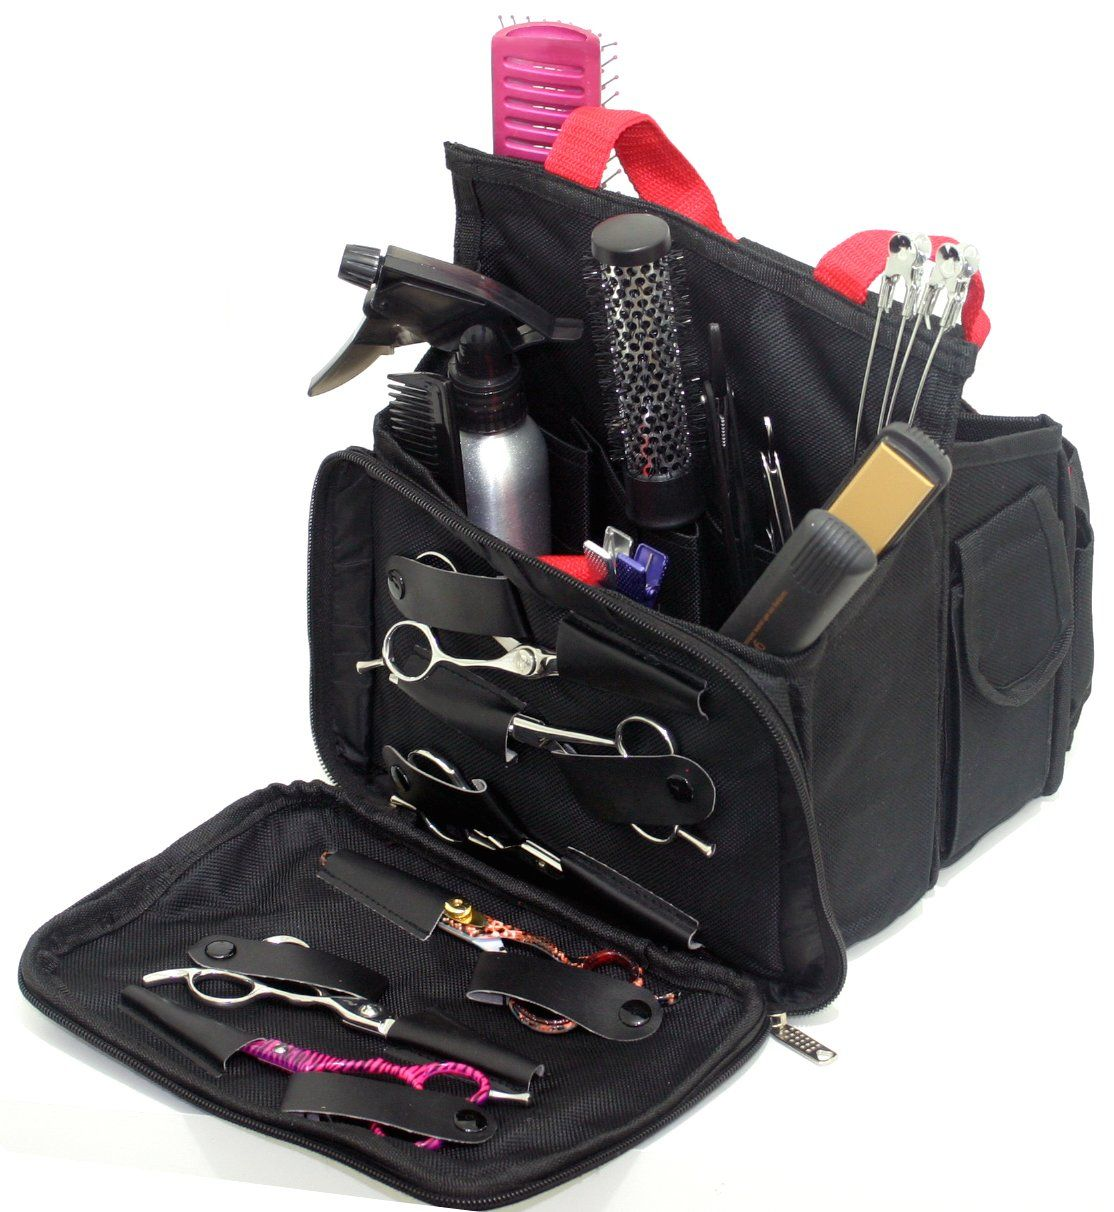 89374b8712 Hairdressing Tool Bag Carry Case Perfect for Hairdresser Barber Salon  Accessories Storage Session  Amazon.co.uk  Beauty